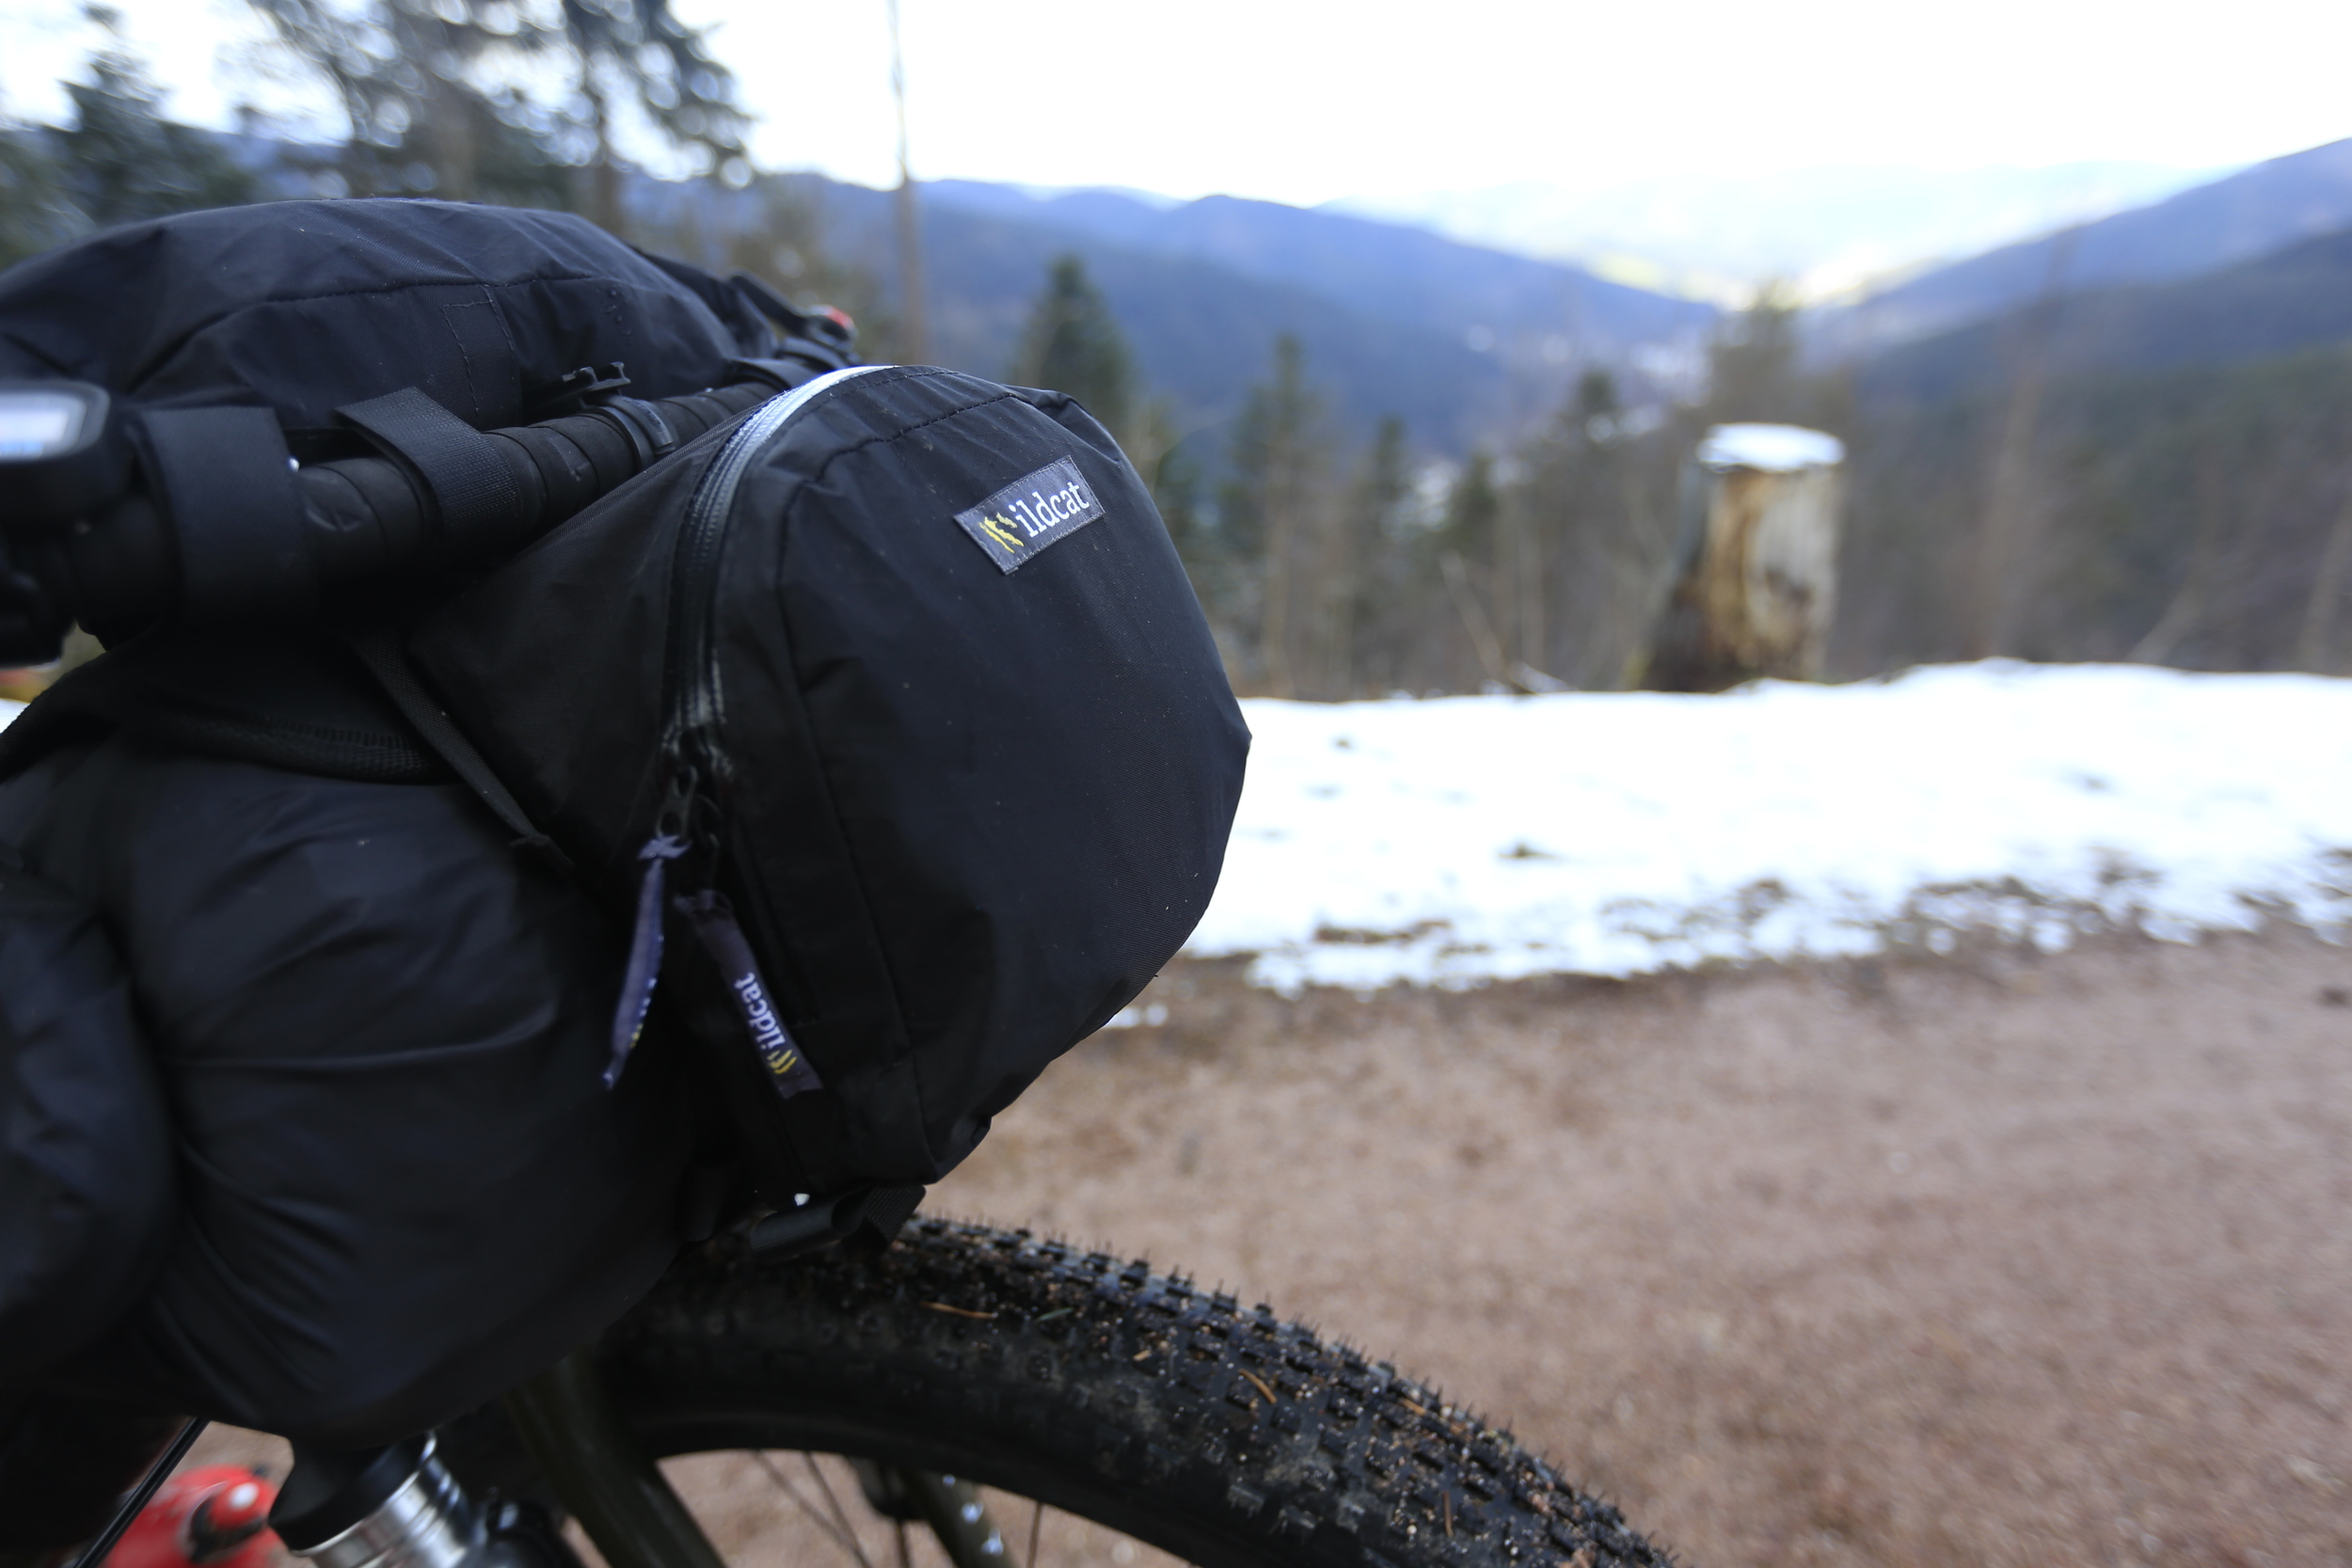 wildcat, wildcat gear, tom cat, stem captain, stem captain clock, garmin, garmin gps, jones, jones h bar, lioness, mountain lion, surly, surly ecr, ecr, 29er, fat bike, cycling blog, bikepacking blog, touring, photography, canon, canon 6d, klean kanteen, bicycle touring, bicycle fat biking